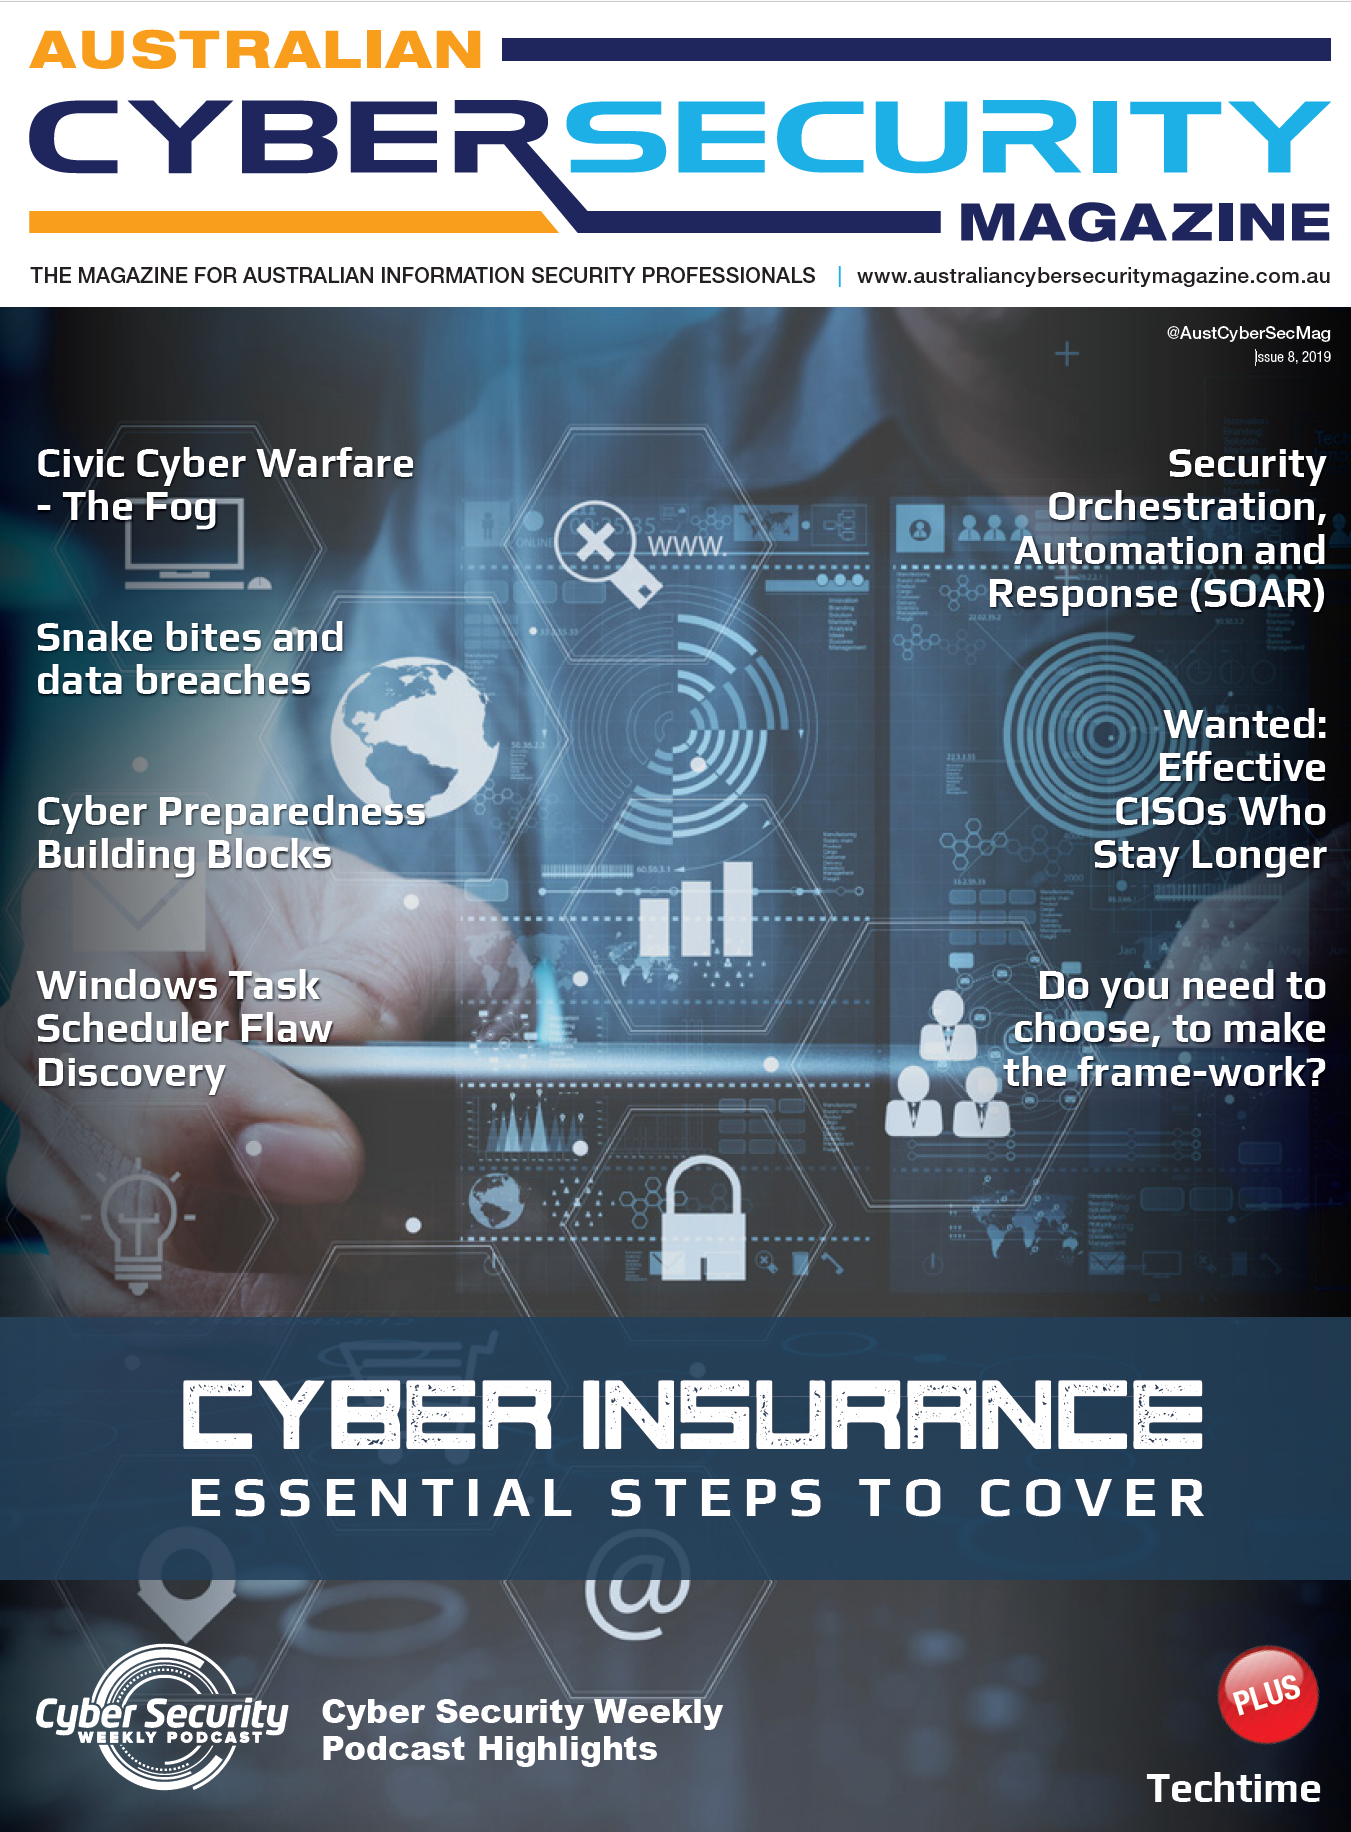 Australian Cyber Security Magazine Issue 8 2019 Cover